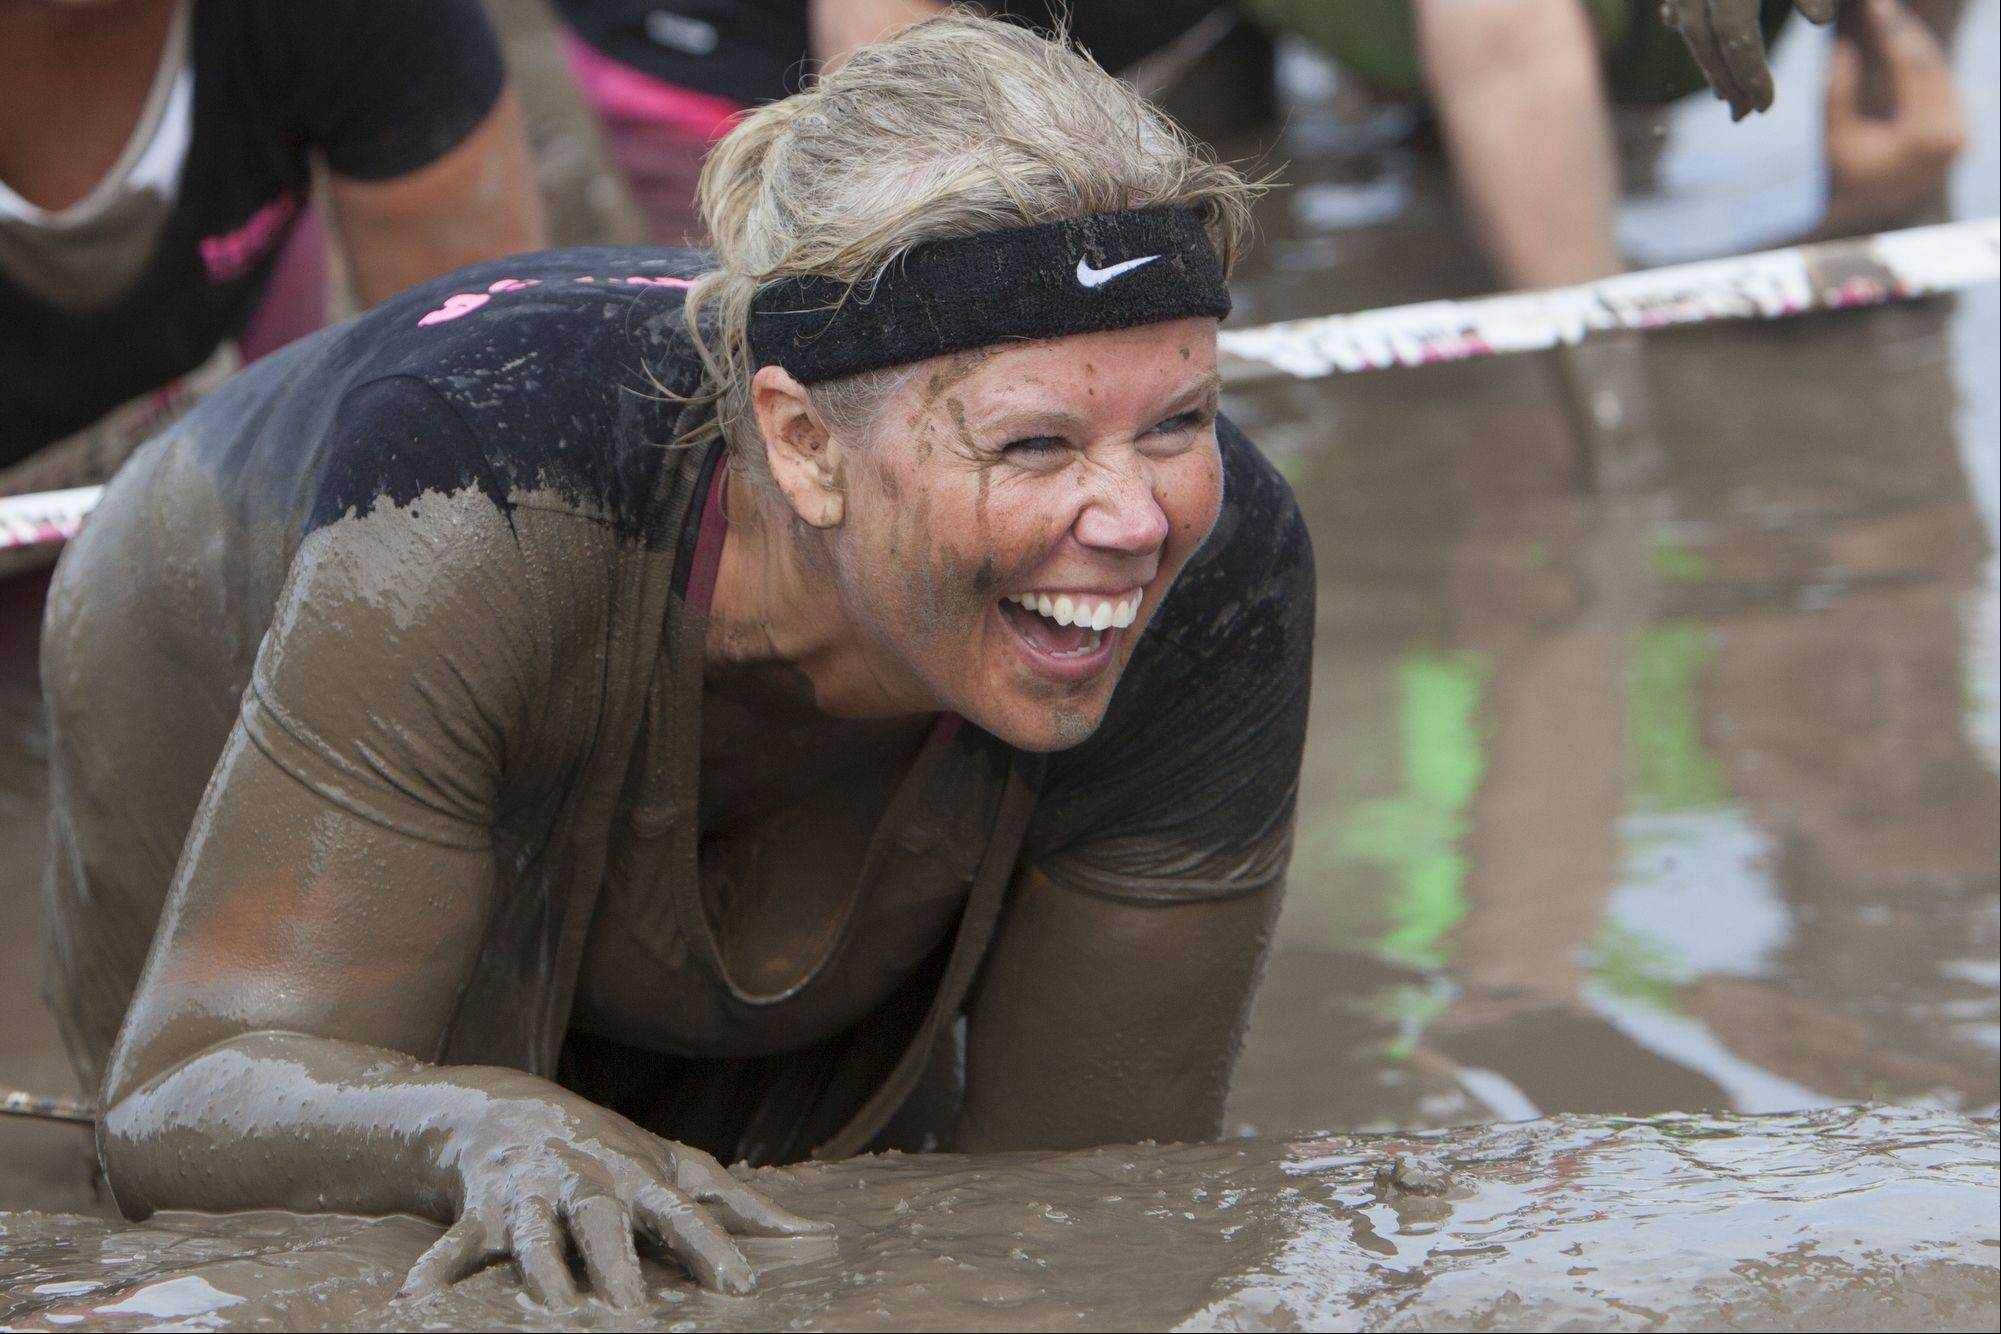 Stacey Anderson of Lindenhurst laughs when she reaches the end of an mud obstacle course during the Dirty Girl 5k Race.